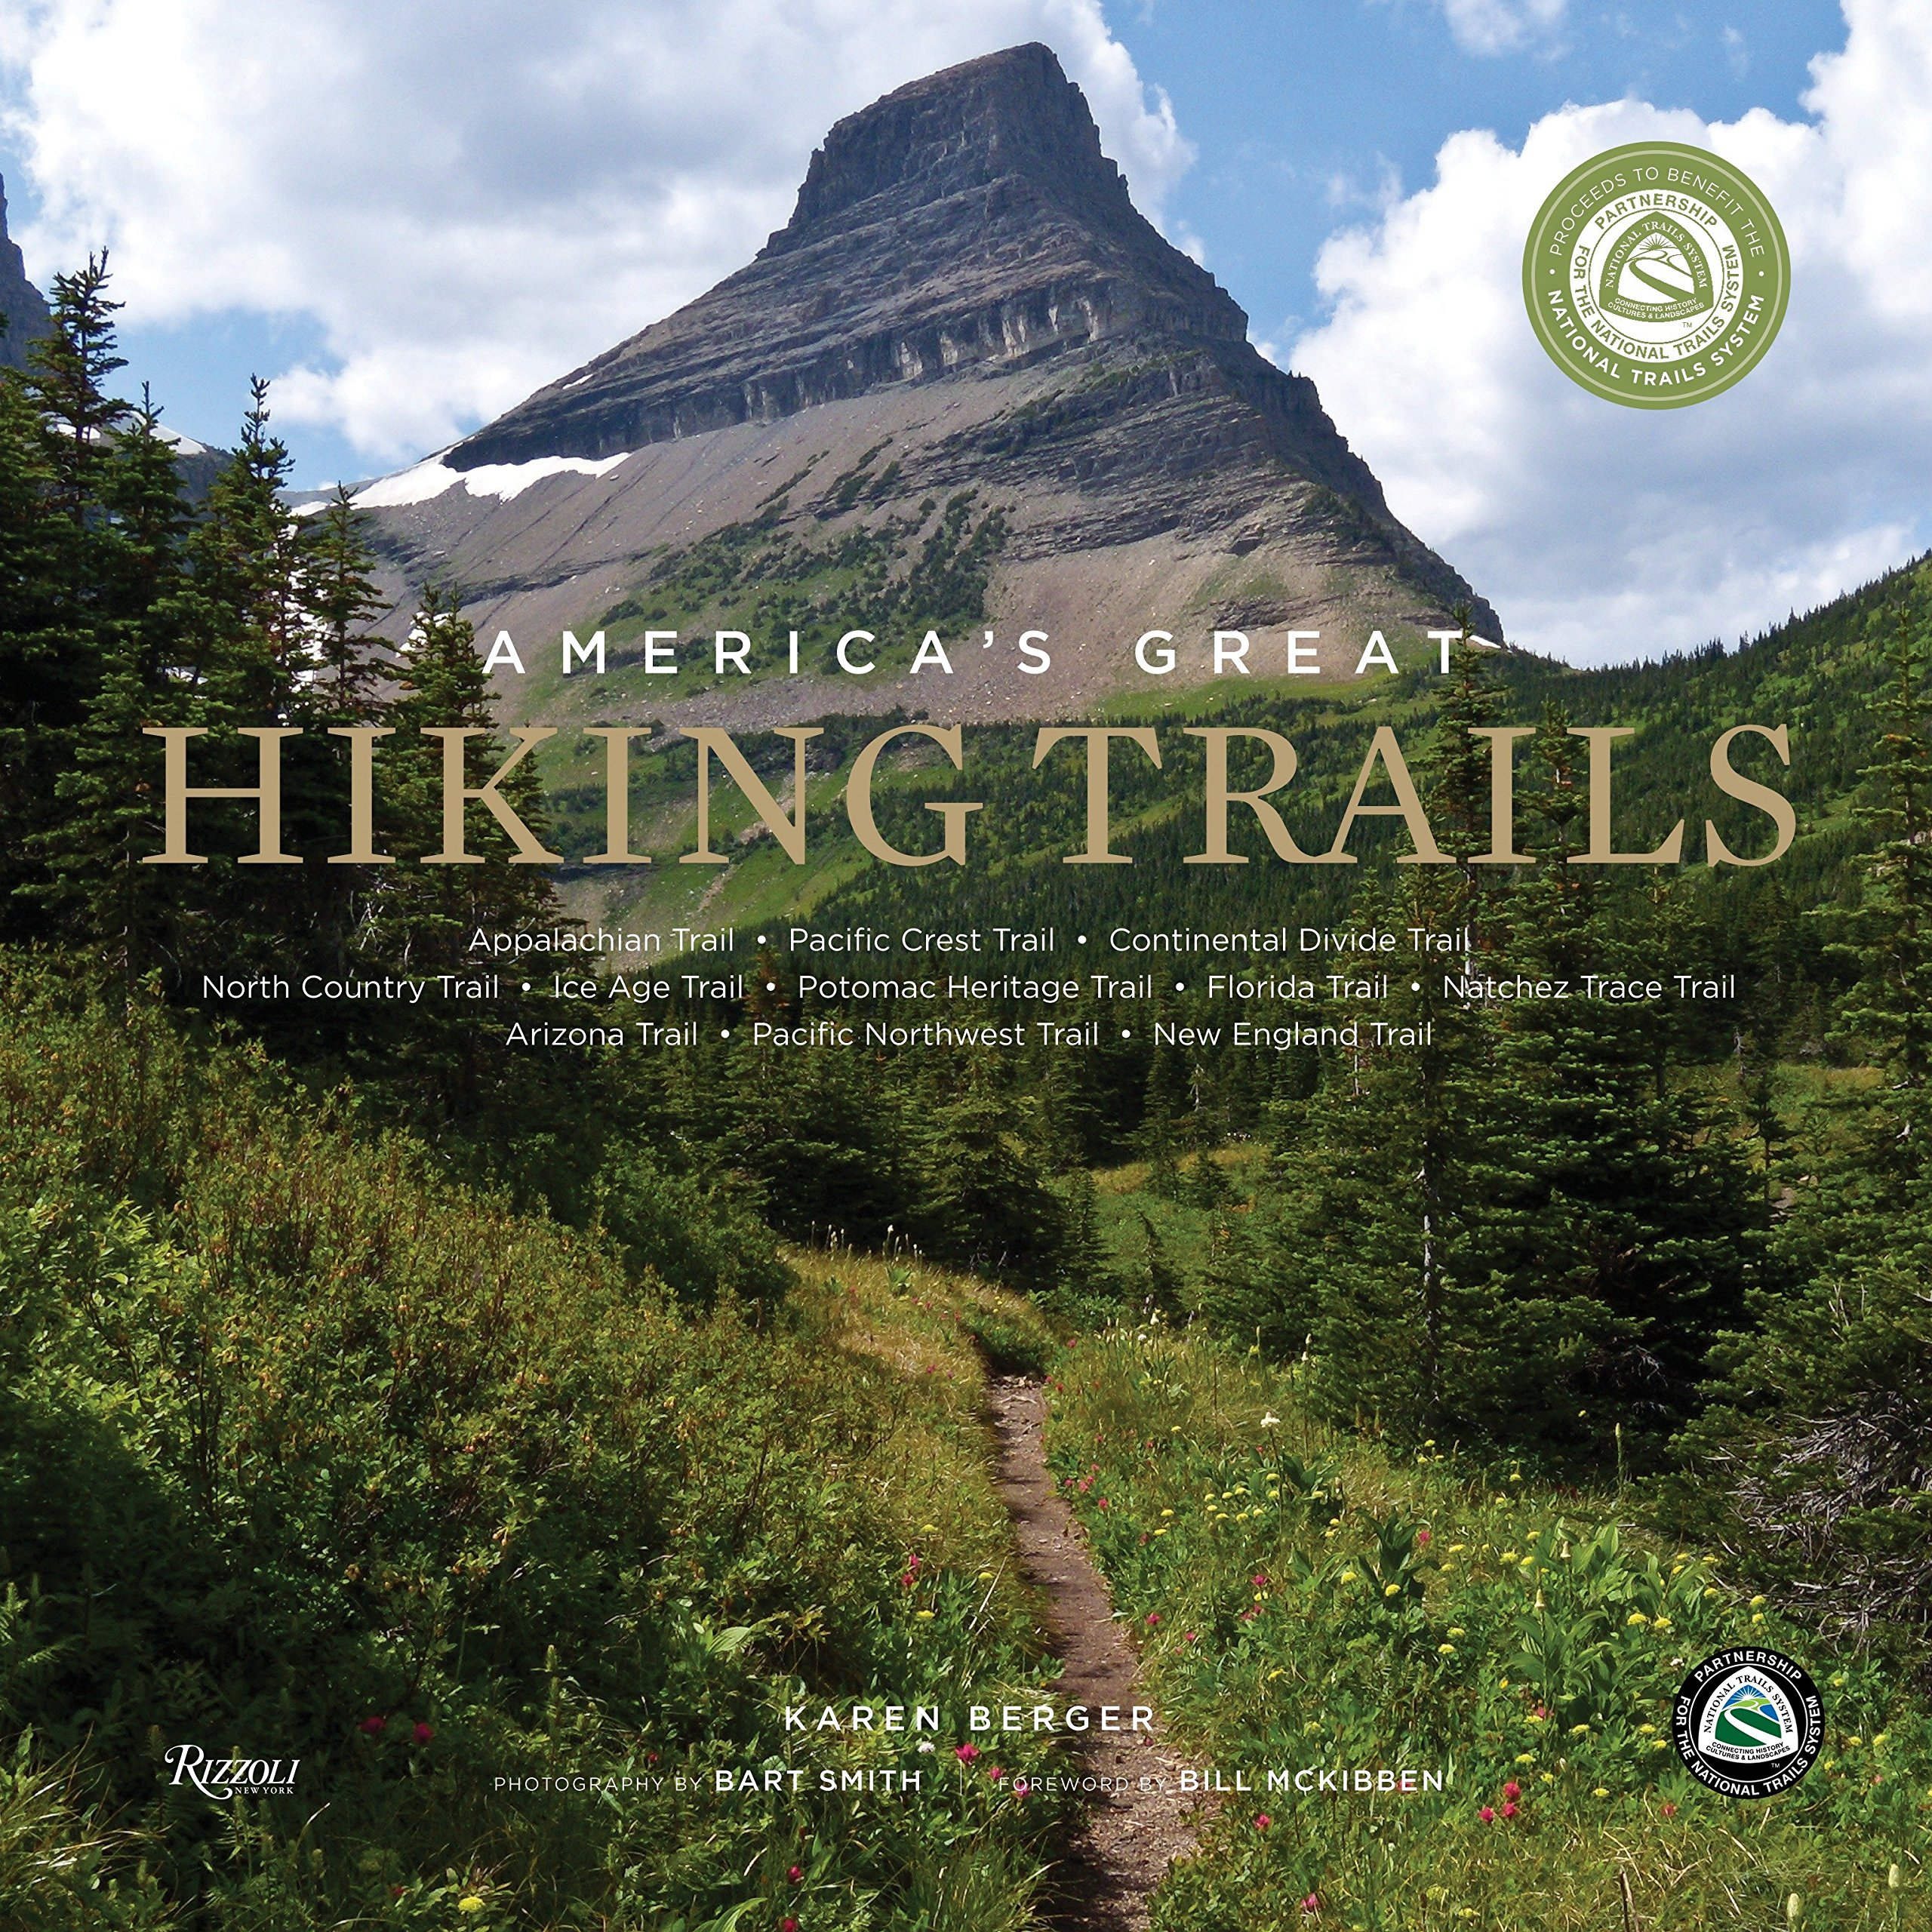 America's Great Hiking Trails: Appalachian, Pacific Crest, Continental Divide, North Country, Ice Age, Potomac Heritage, Florida, Natchez Trace, Arizona, Pacific Northwest, New England by Random House